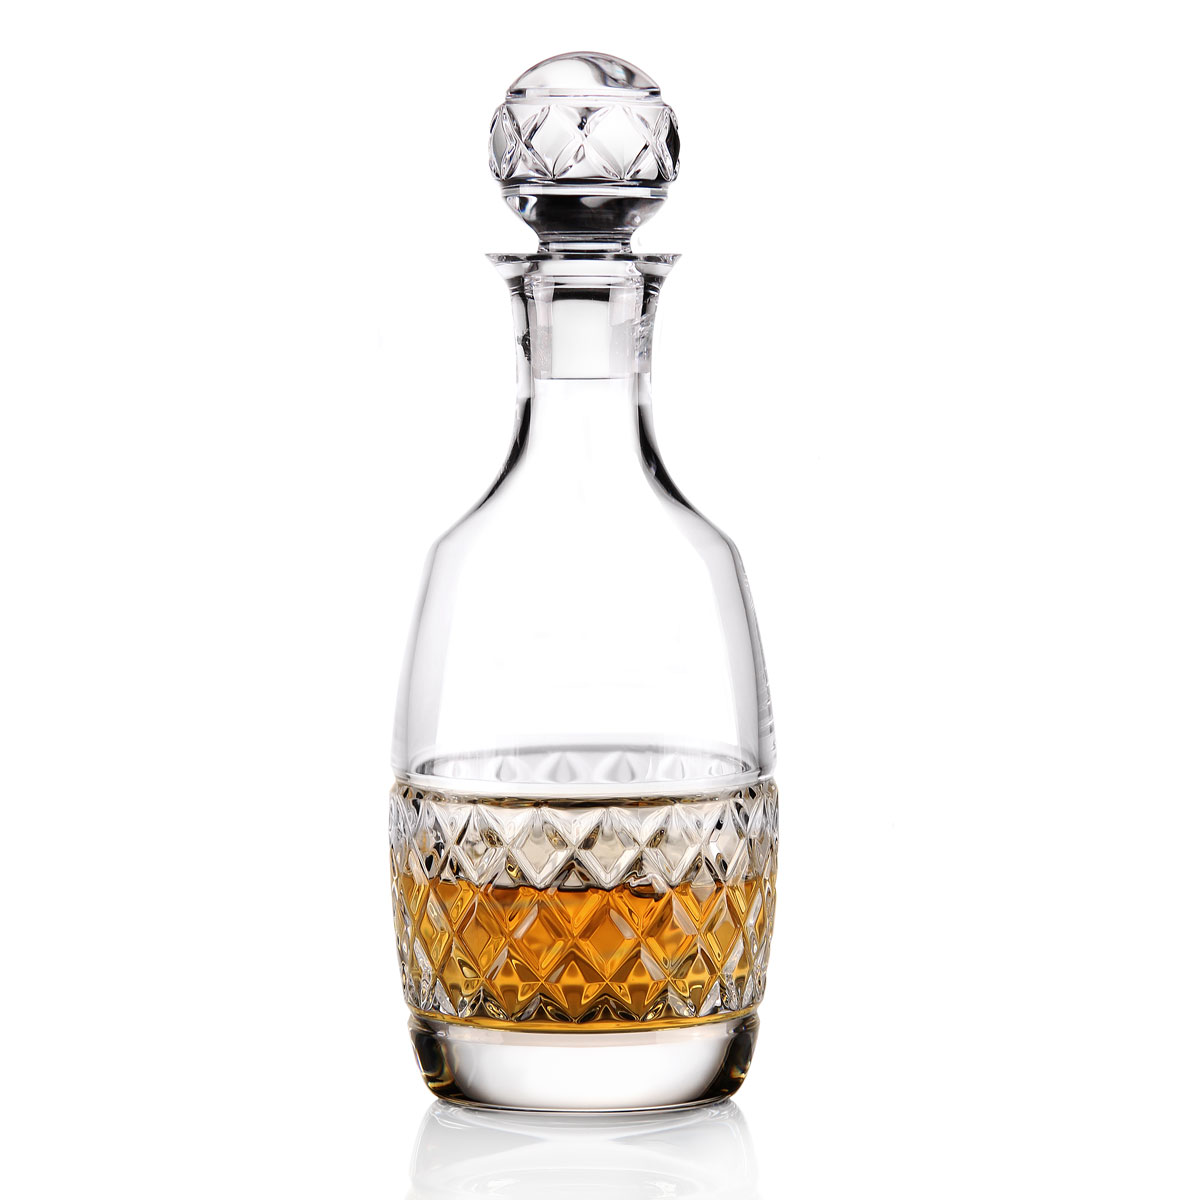 Cashs Ireland Cooper Rounded Whiskey Decanter